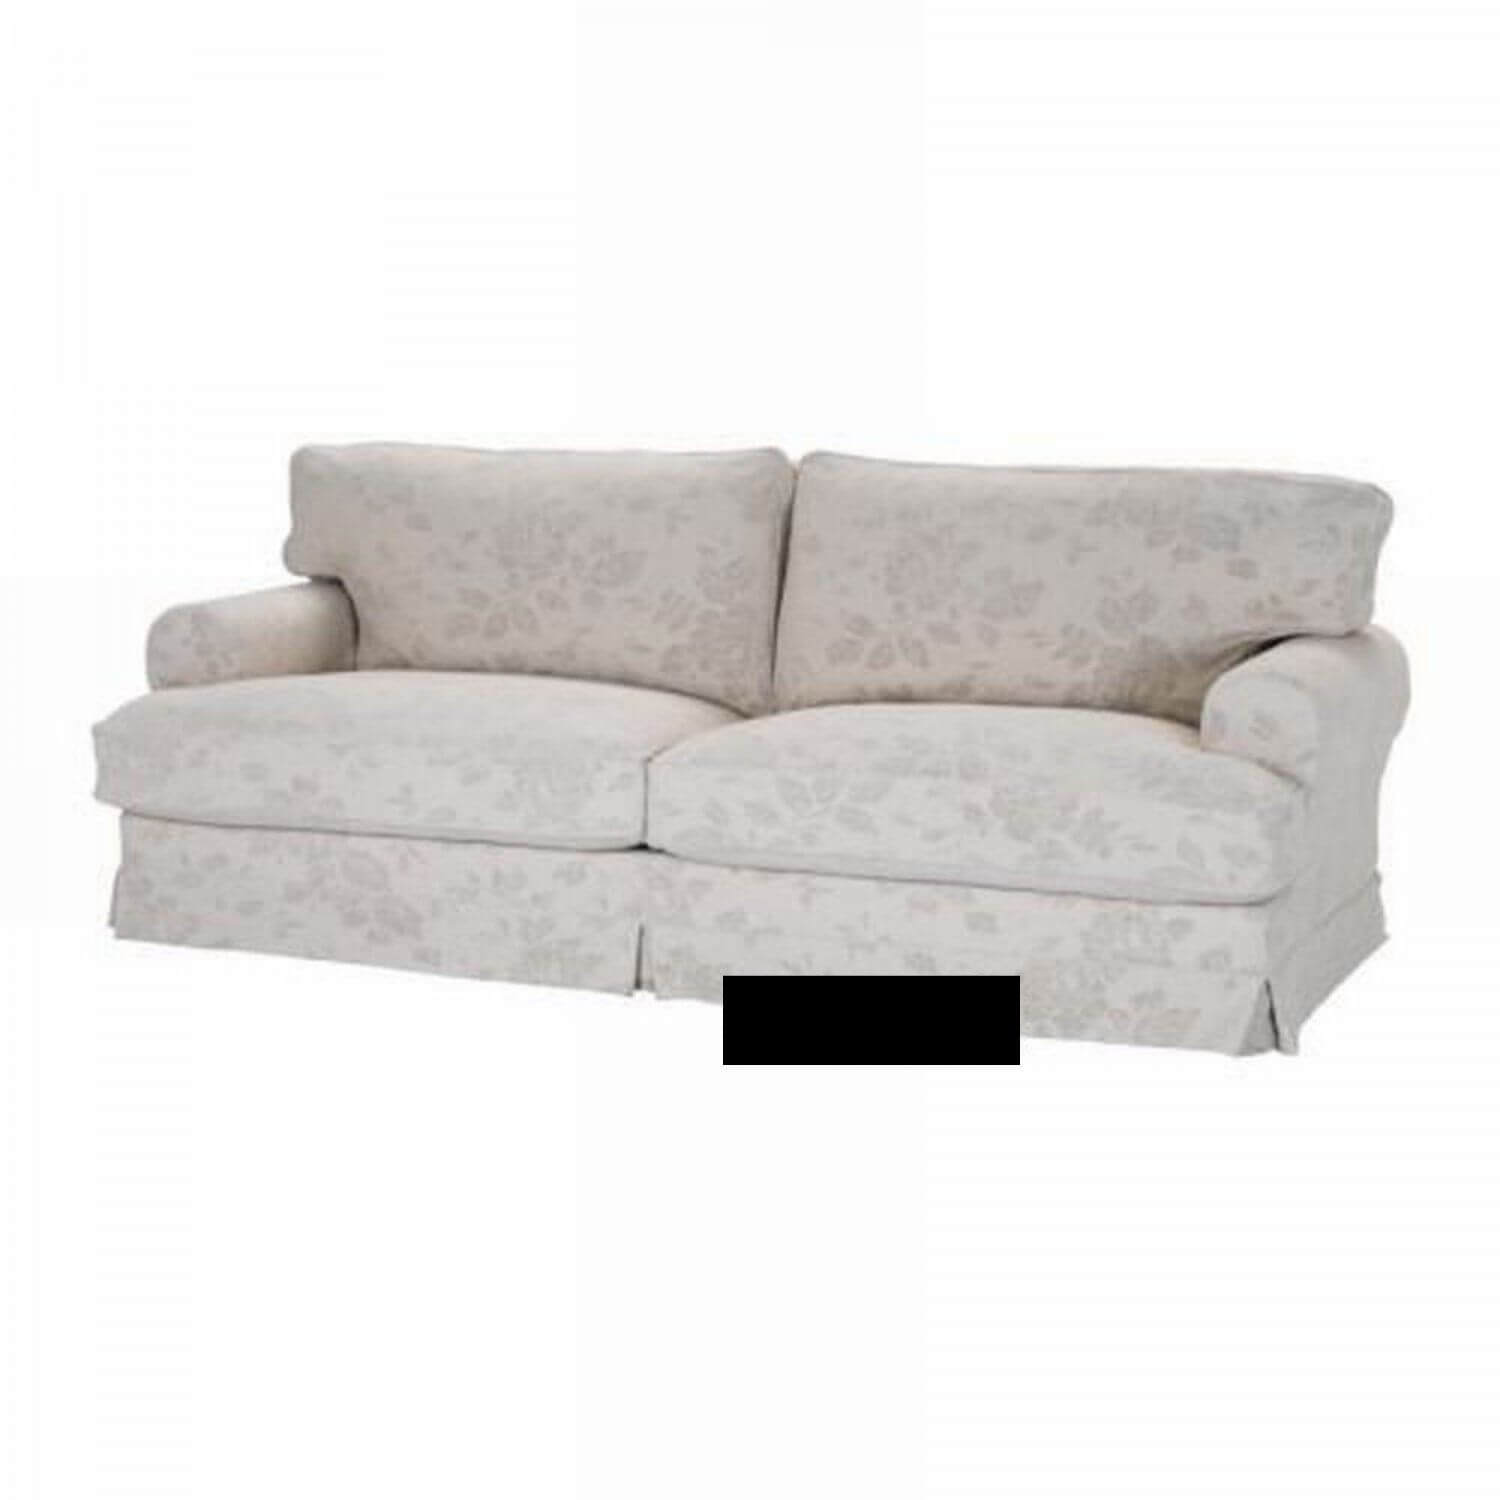 beautiful slip cover sofa pattern-Latest Slip Cover sofa Collection